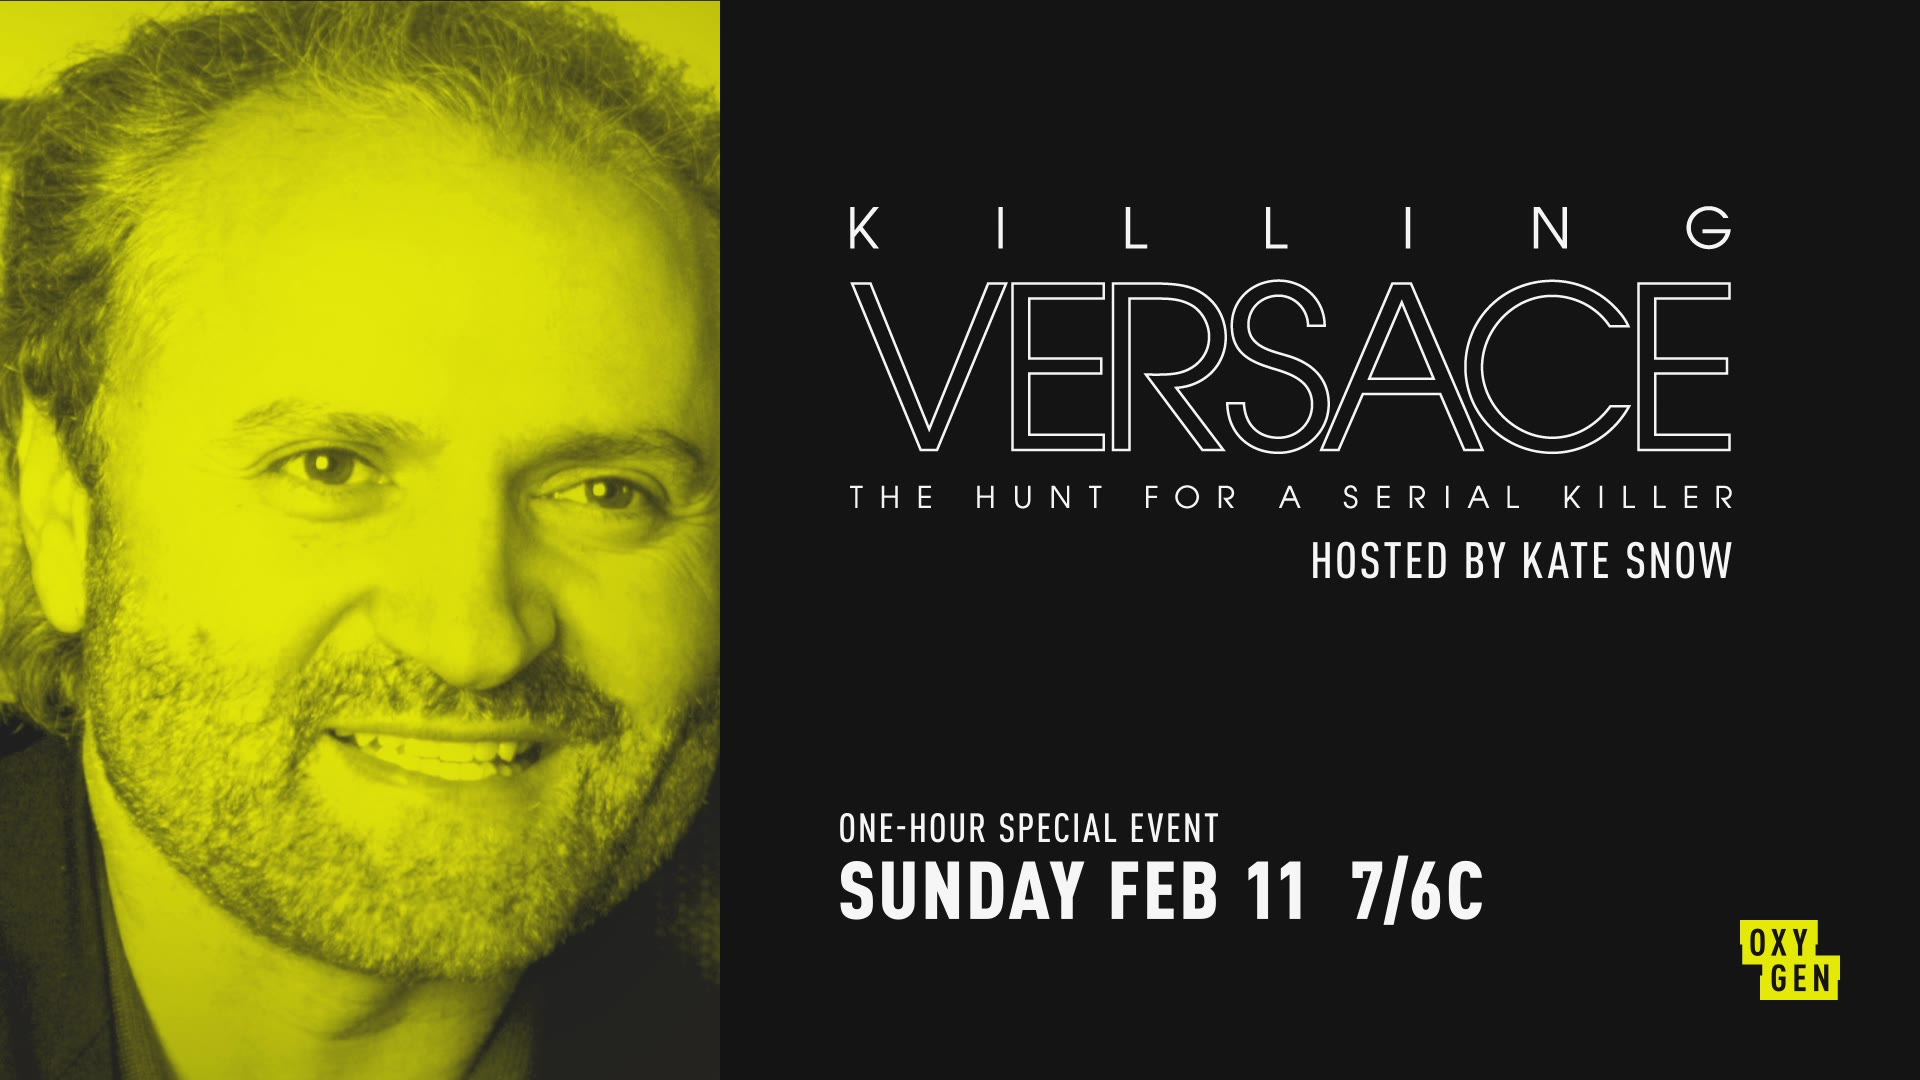 Killing Versace: The Hunt for a Serial Killer Premieres on February 11th!